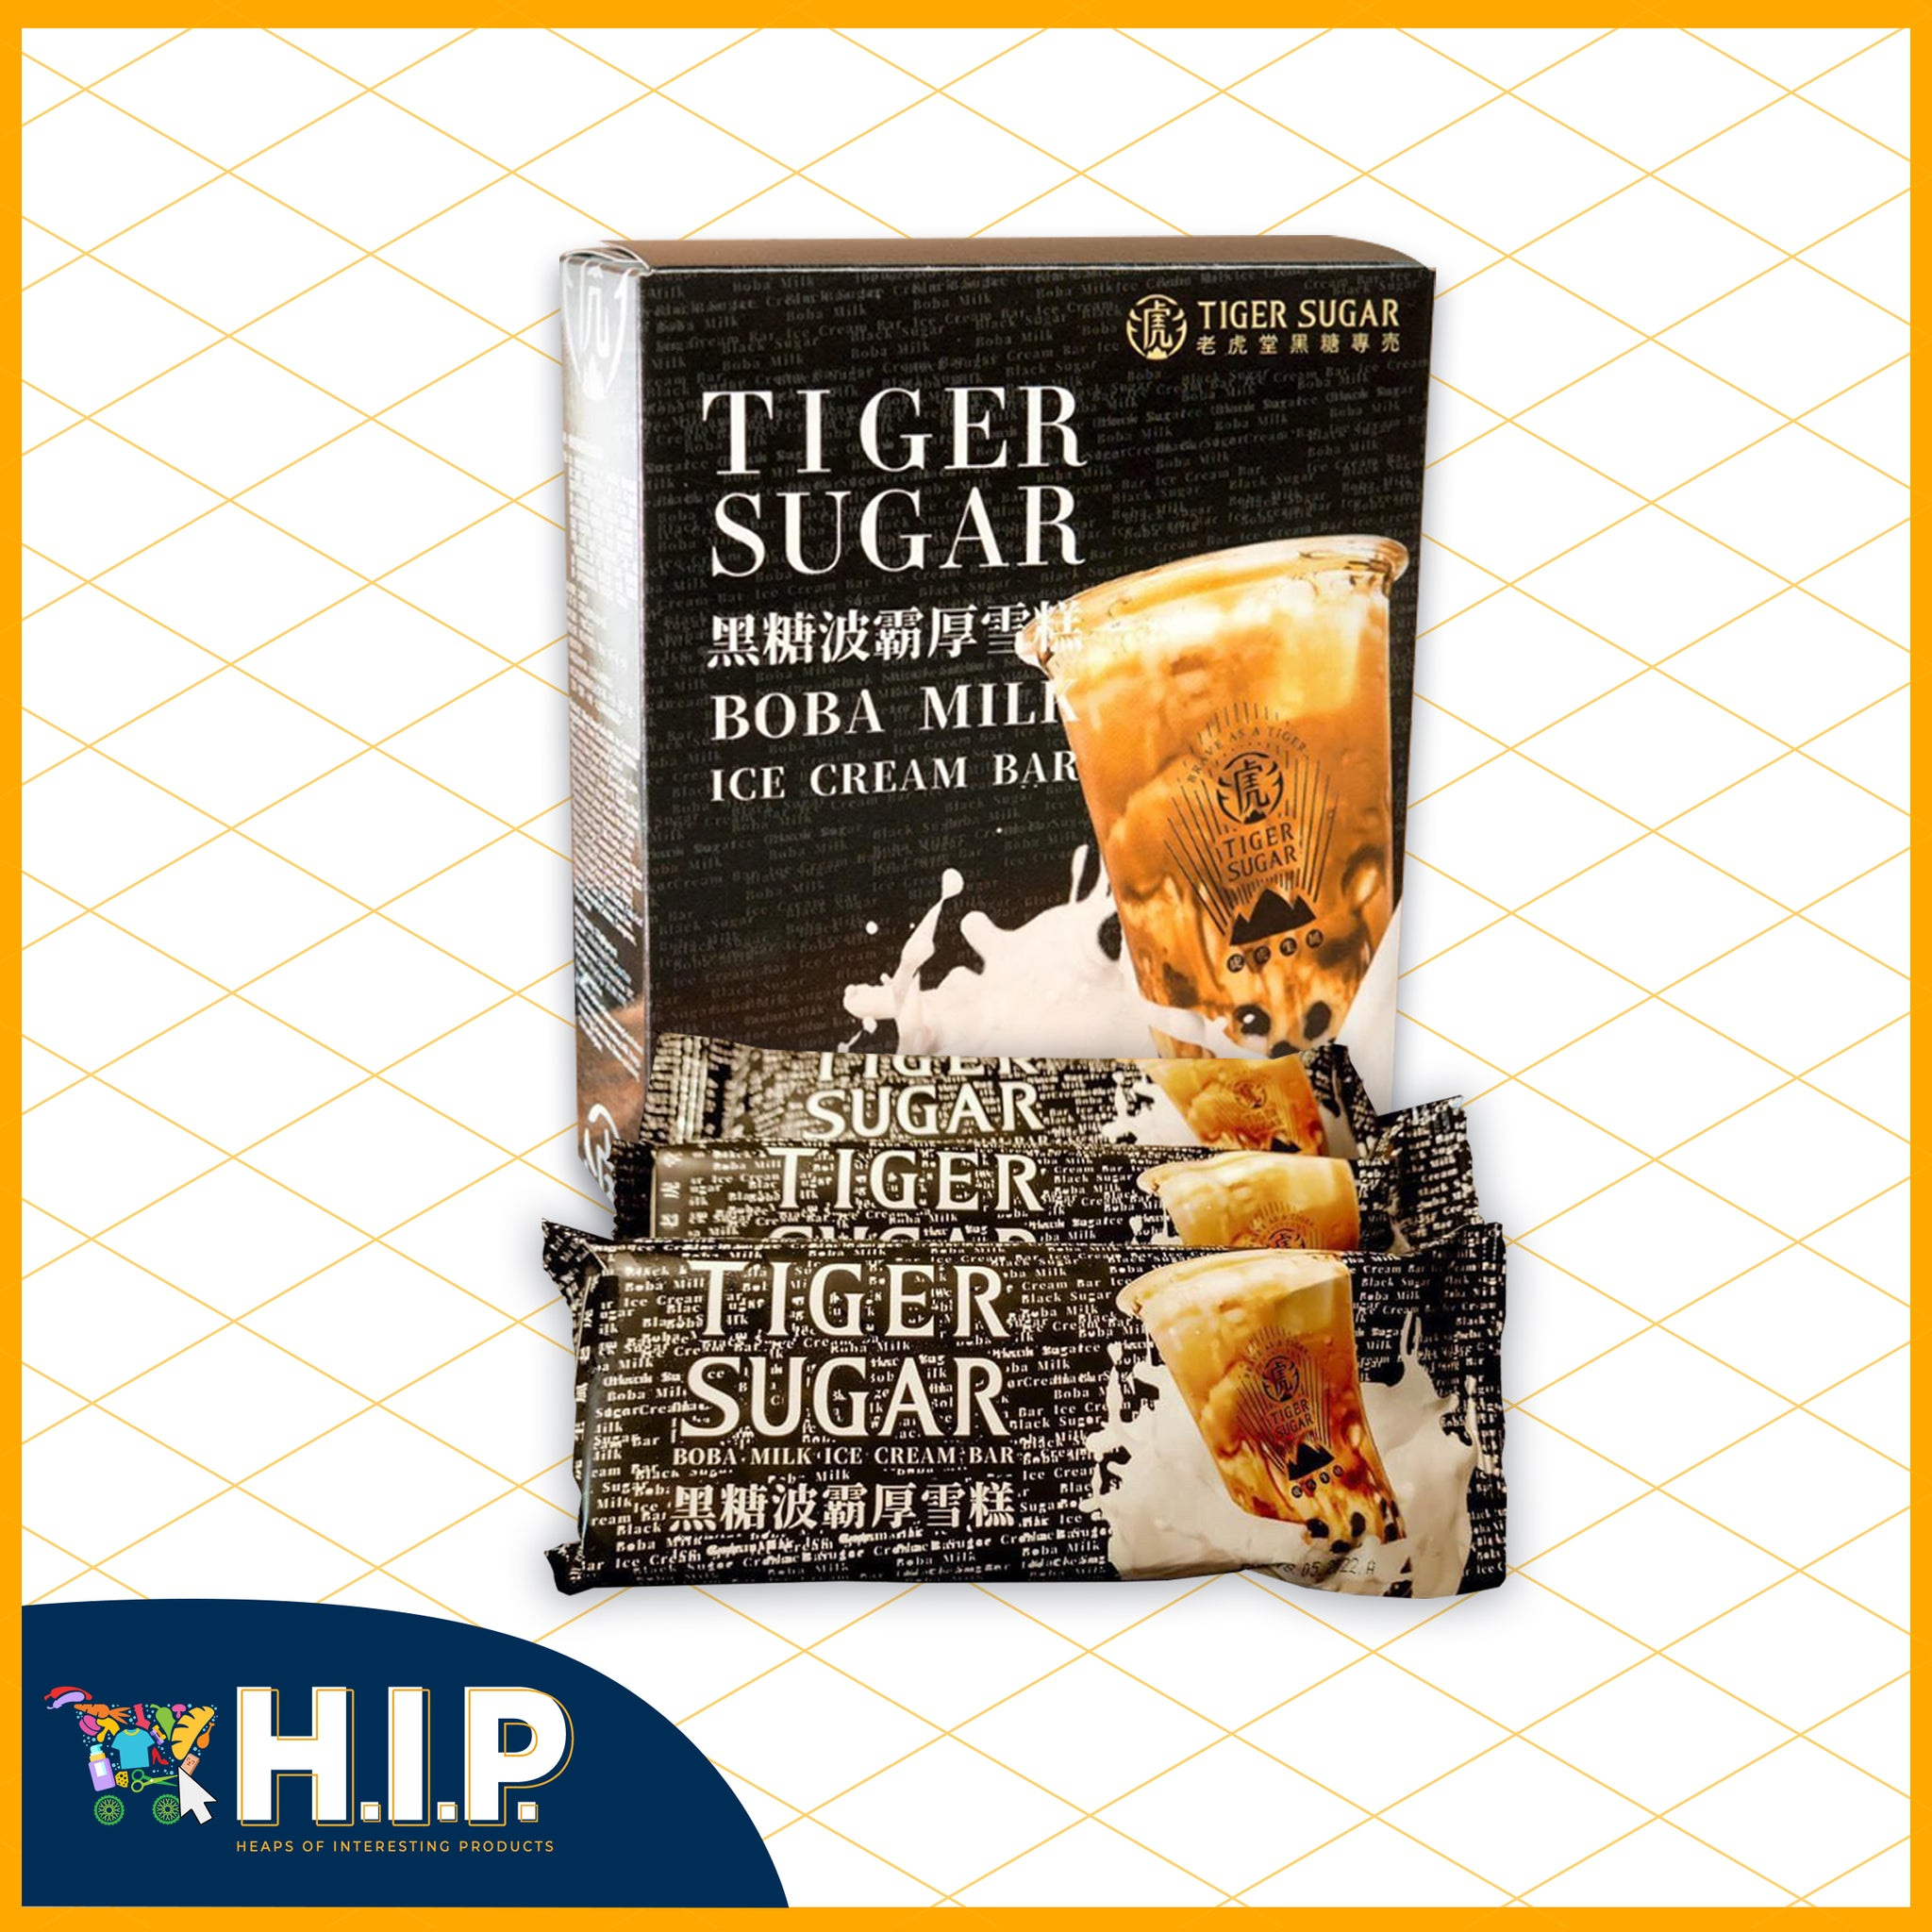 Tiger Sugar Ice Cream Bar